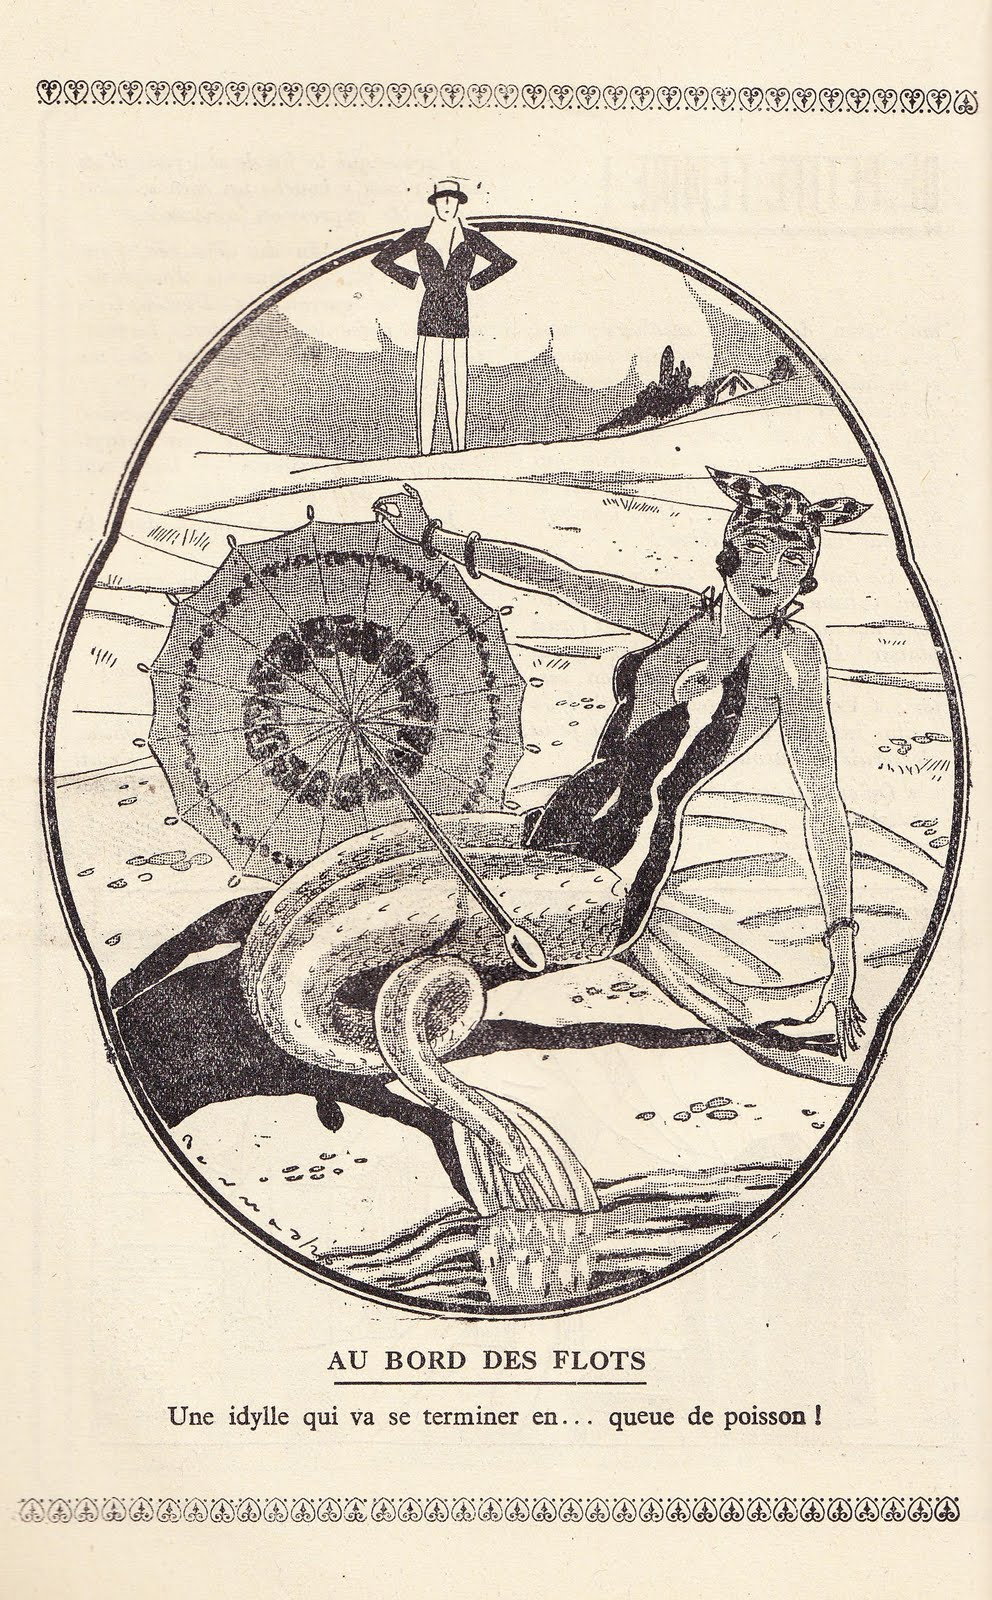 Mermaid from Almanach Gens qui Rient au Grand Air (1927)